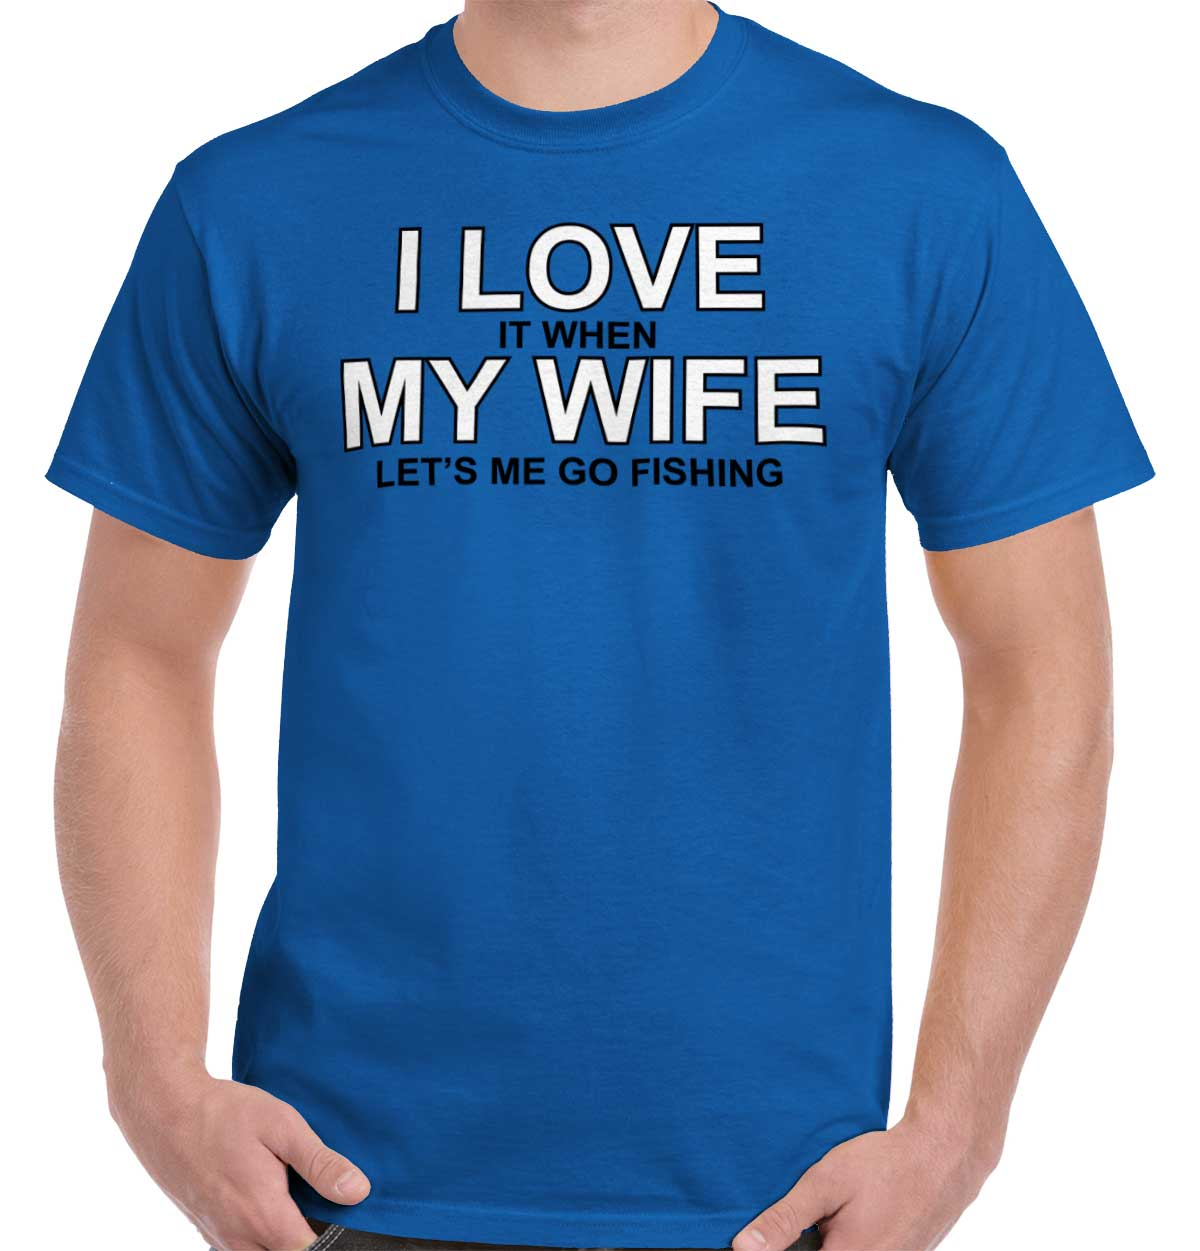 Love My Wife Fishing Shirt | Fish Funny Couple Cute Husband T-Shirt Tee